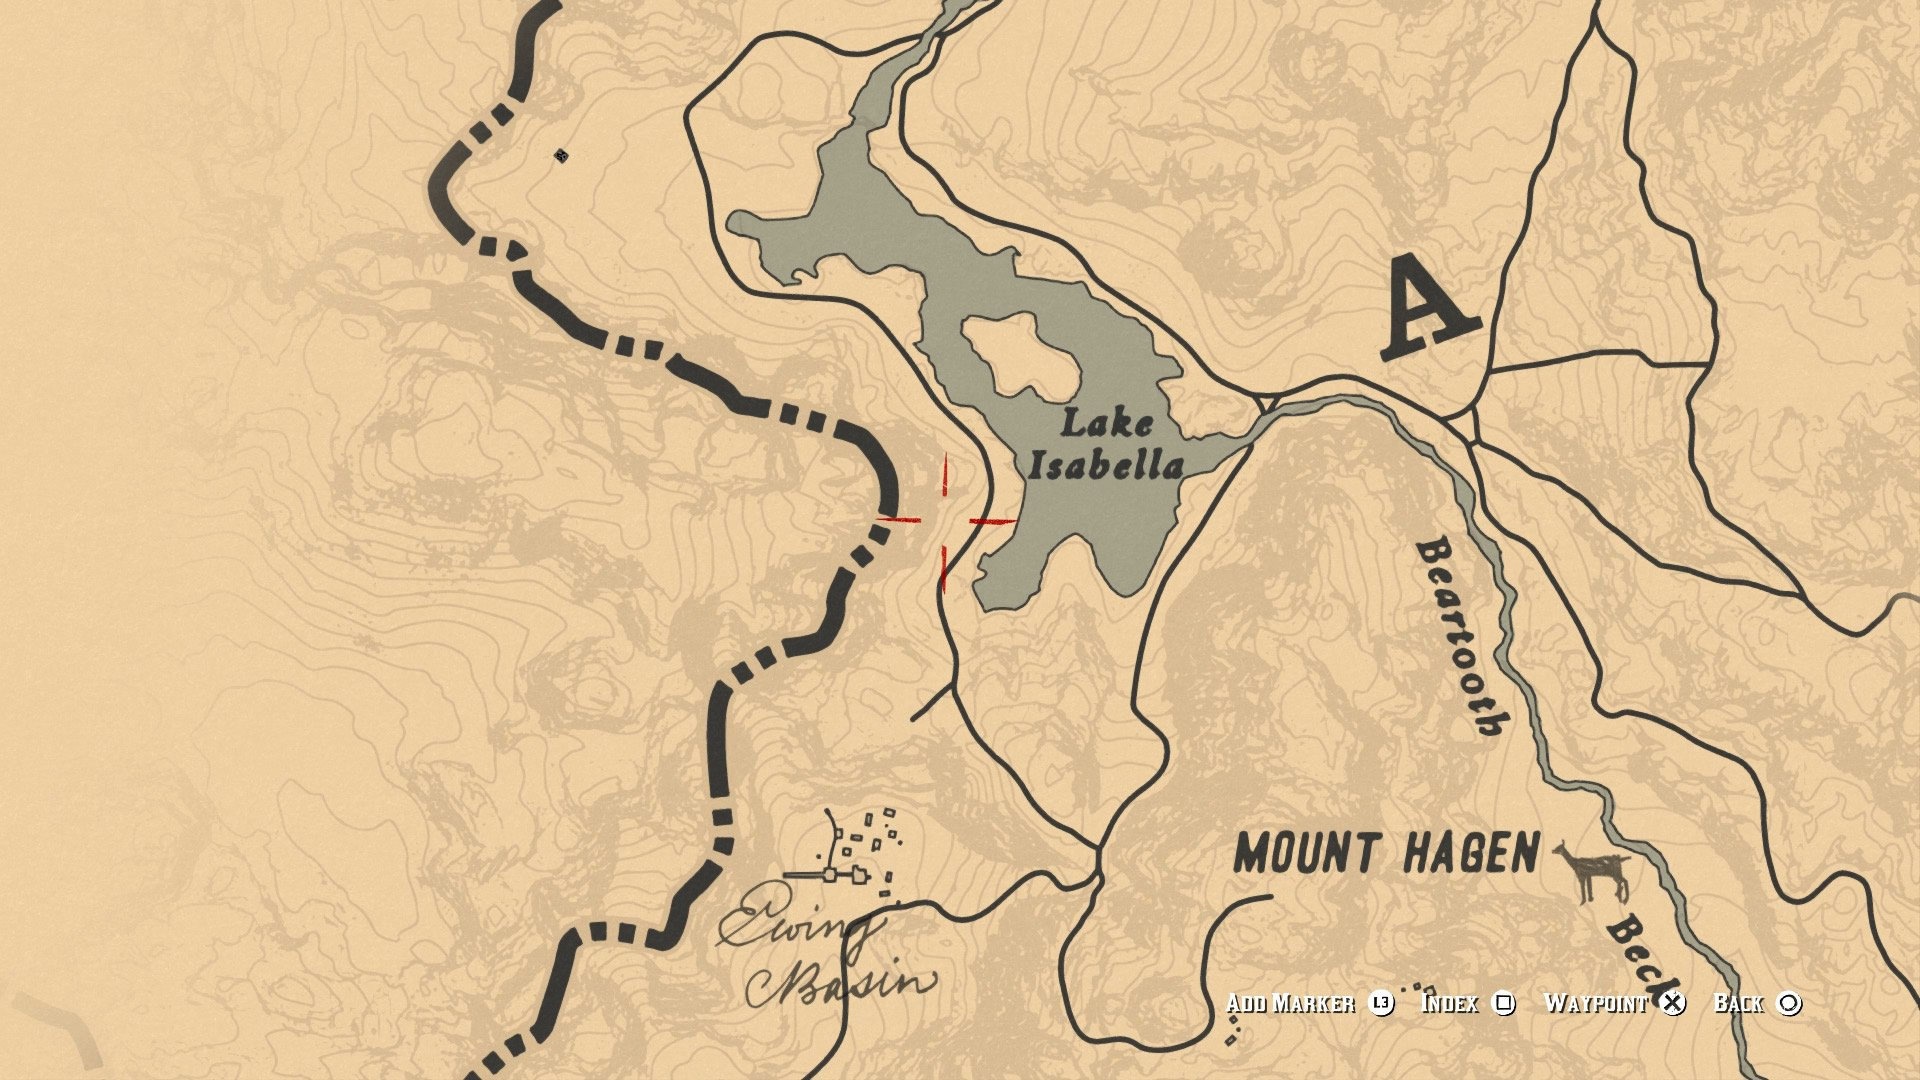 Where to find the wild Arabian horse in Red Dead Redemption 2